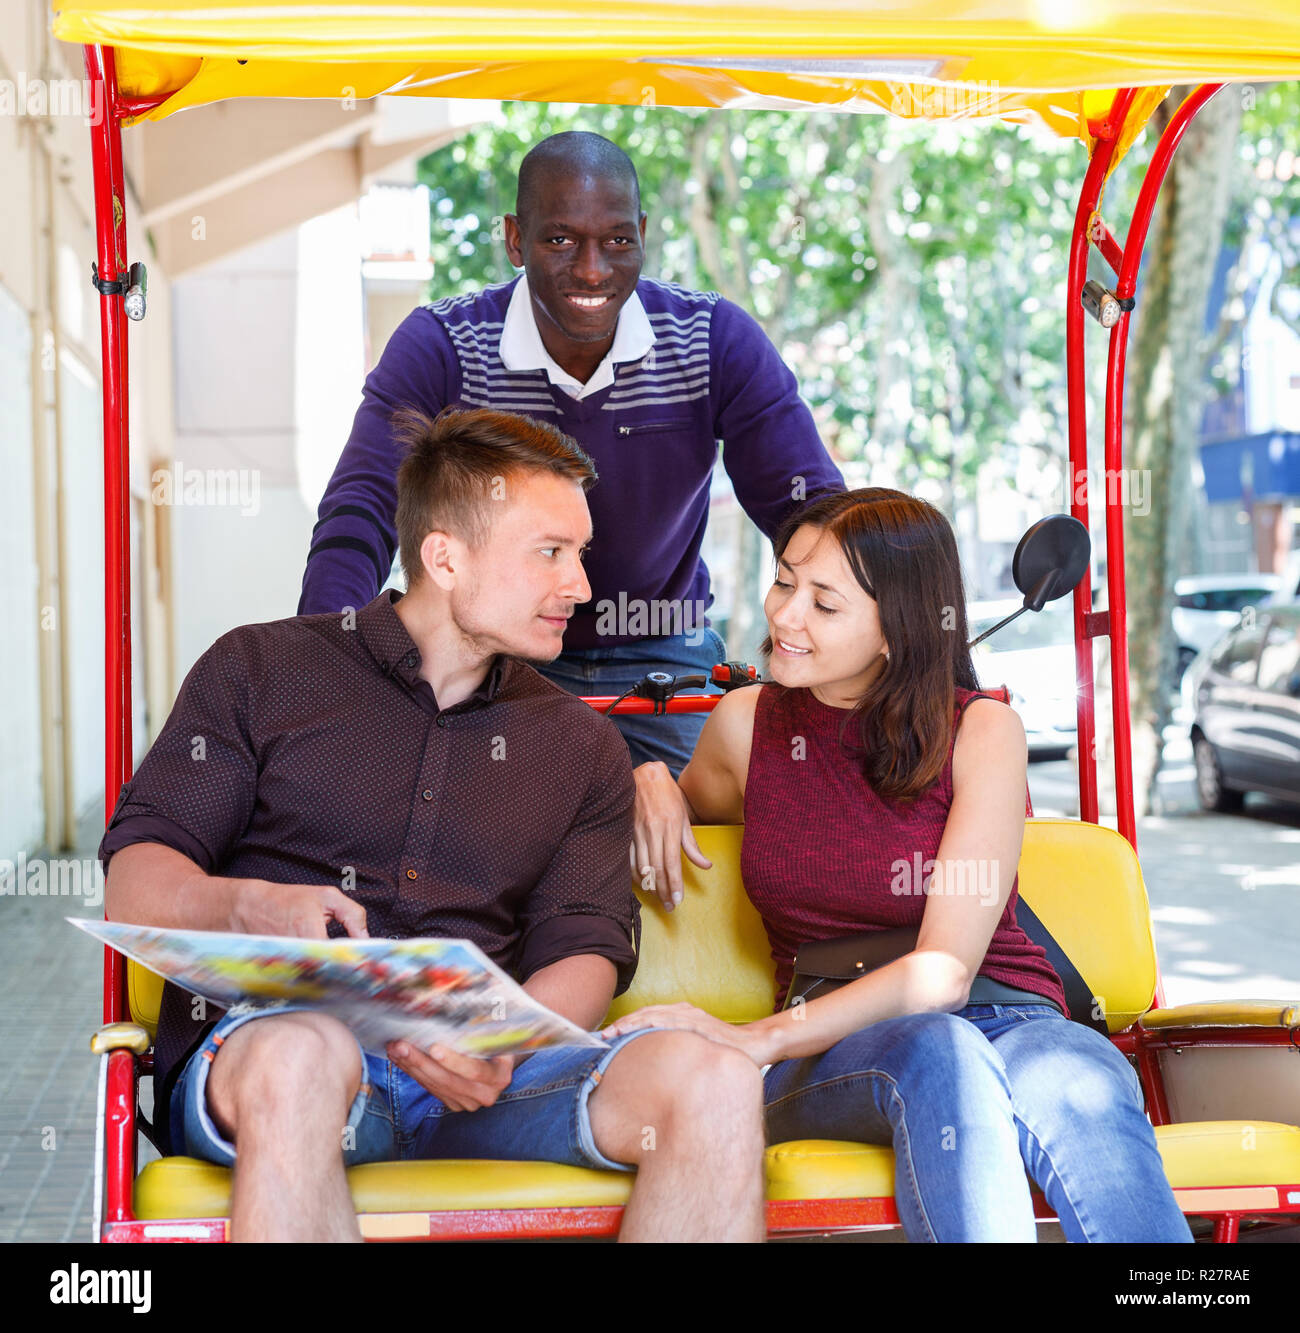 Young loving happy cheerful positive couple enjoying tour of city on trishaw with affable African American driver - Stock Image